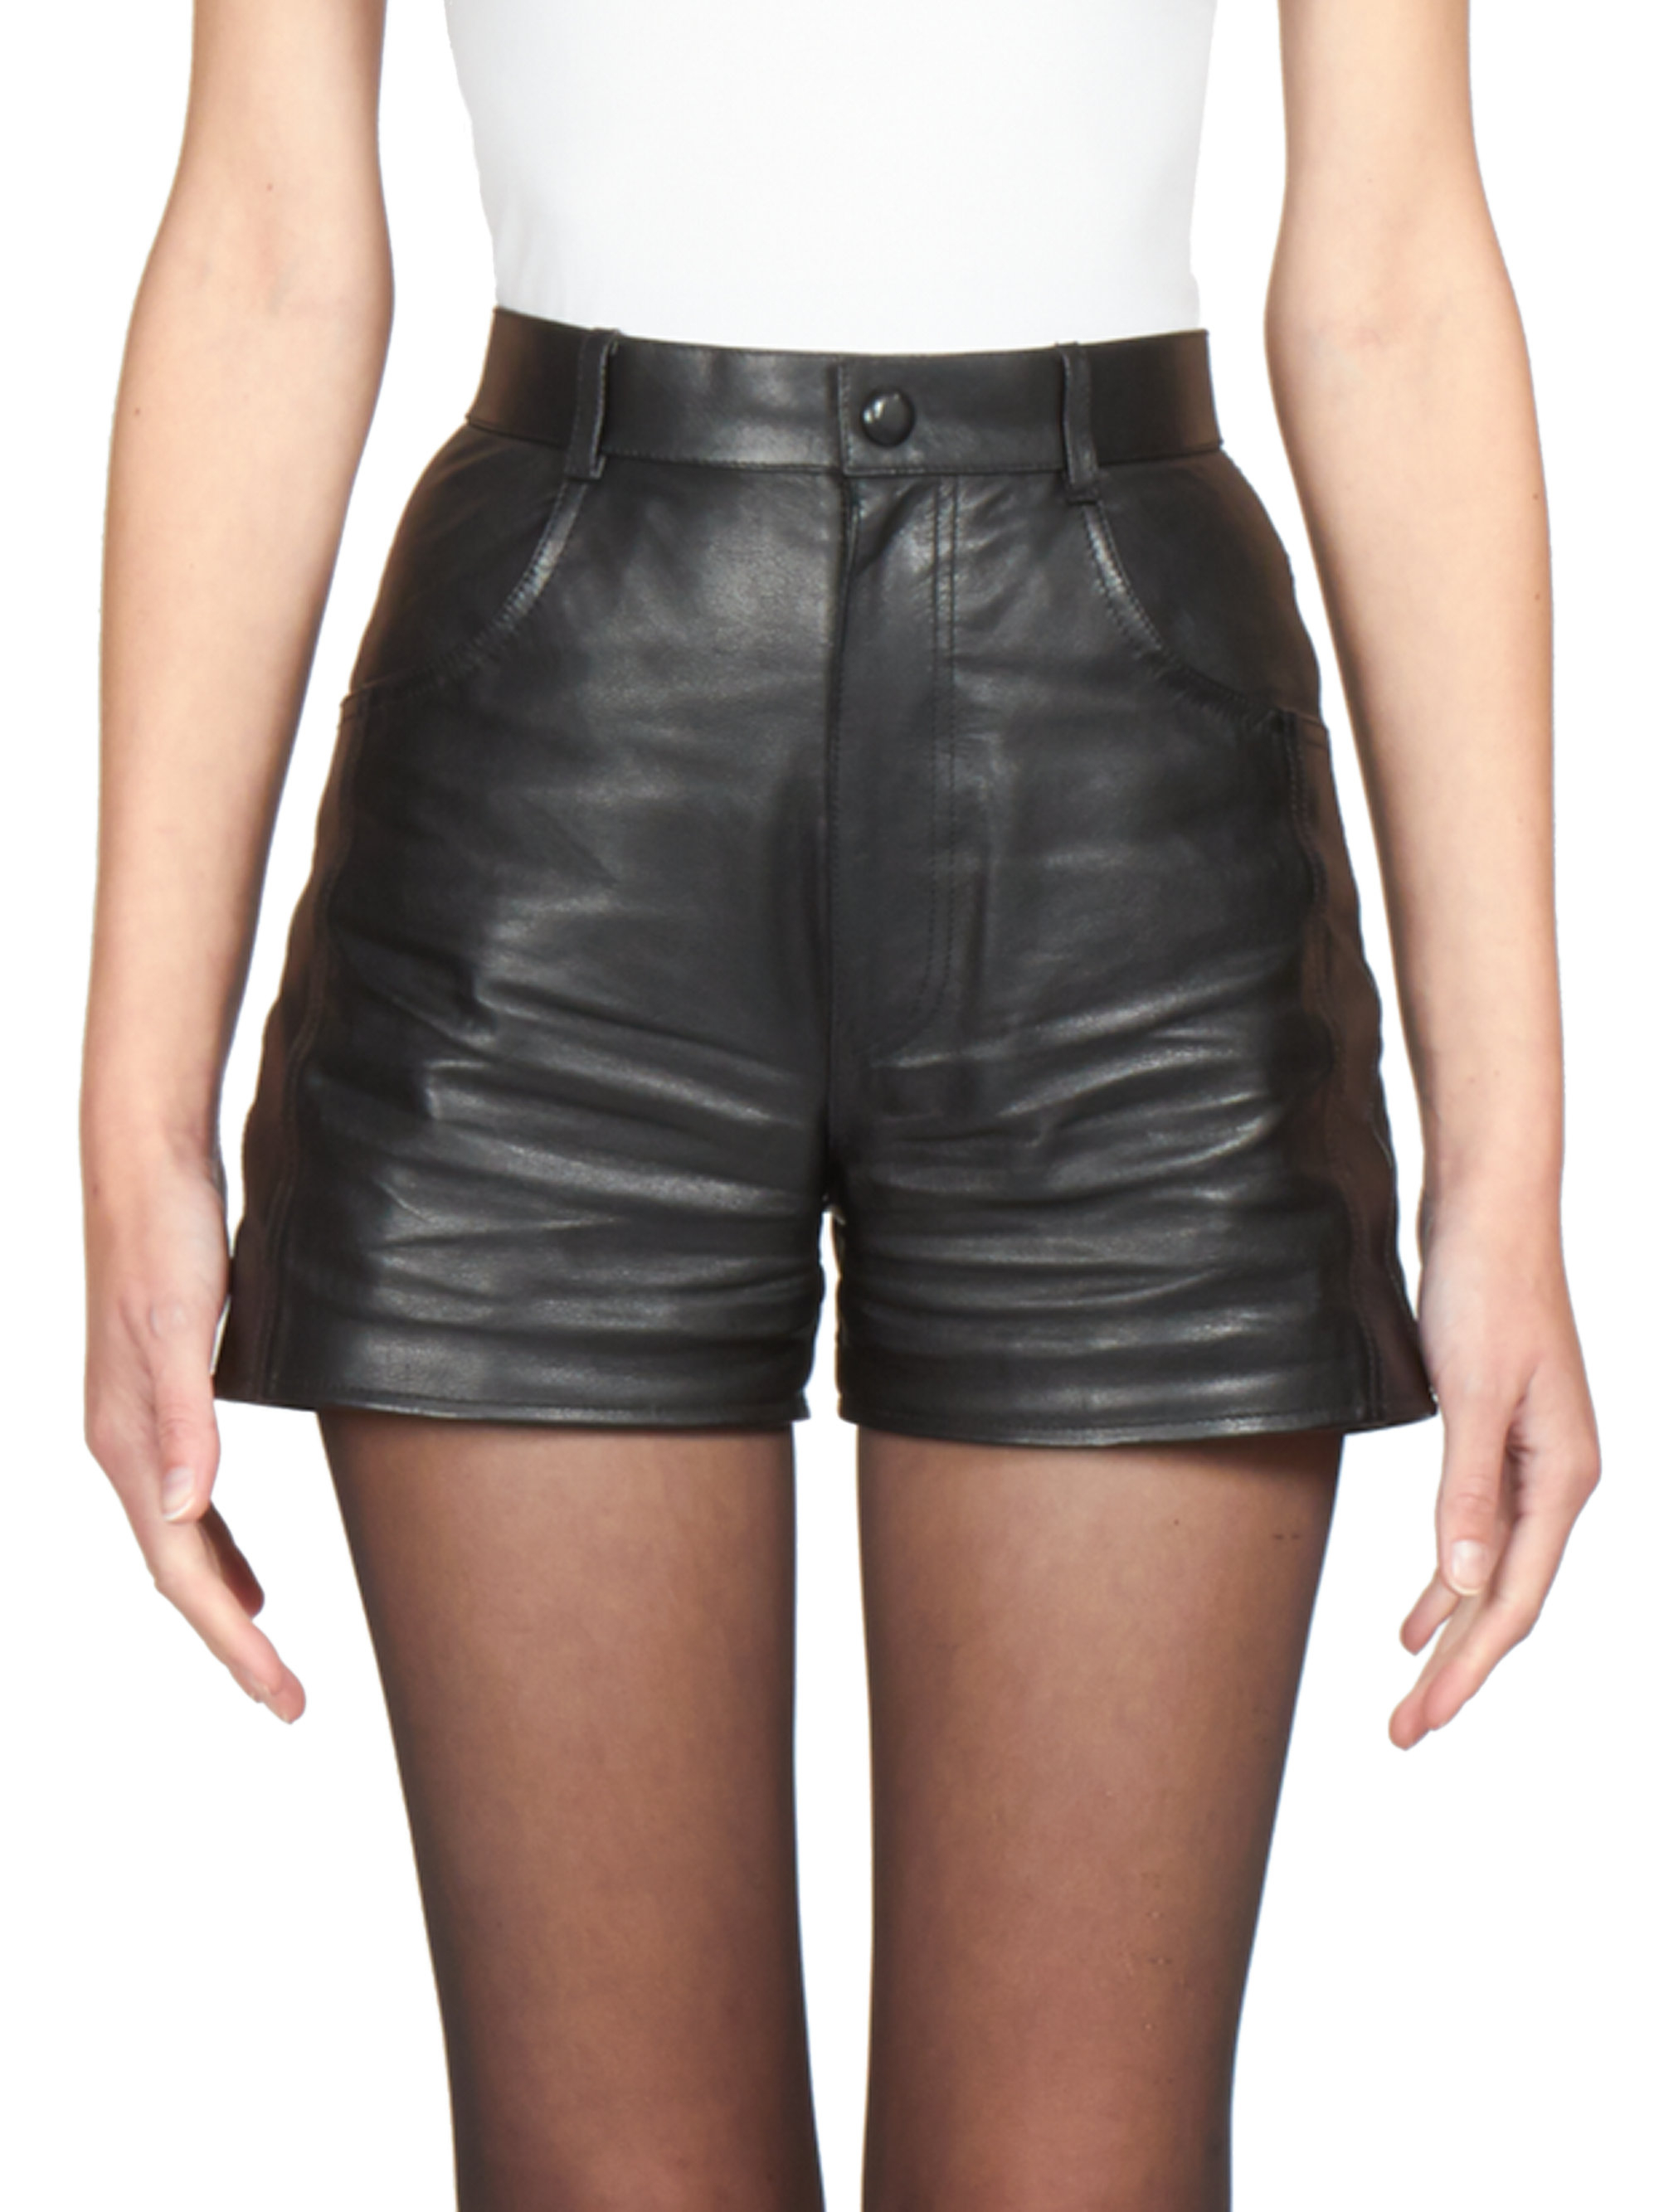 Saint laurent Leather High-waist Shorts in Black | Lyst